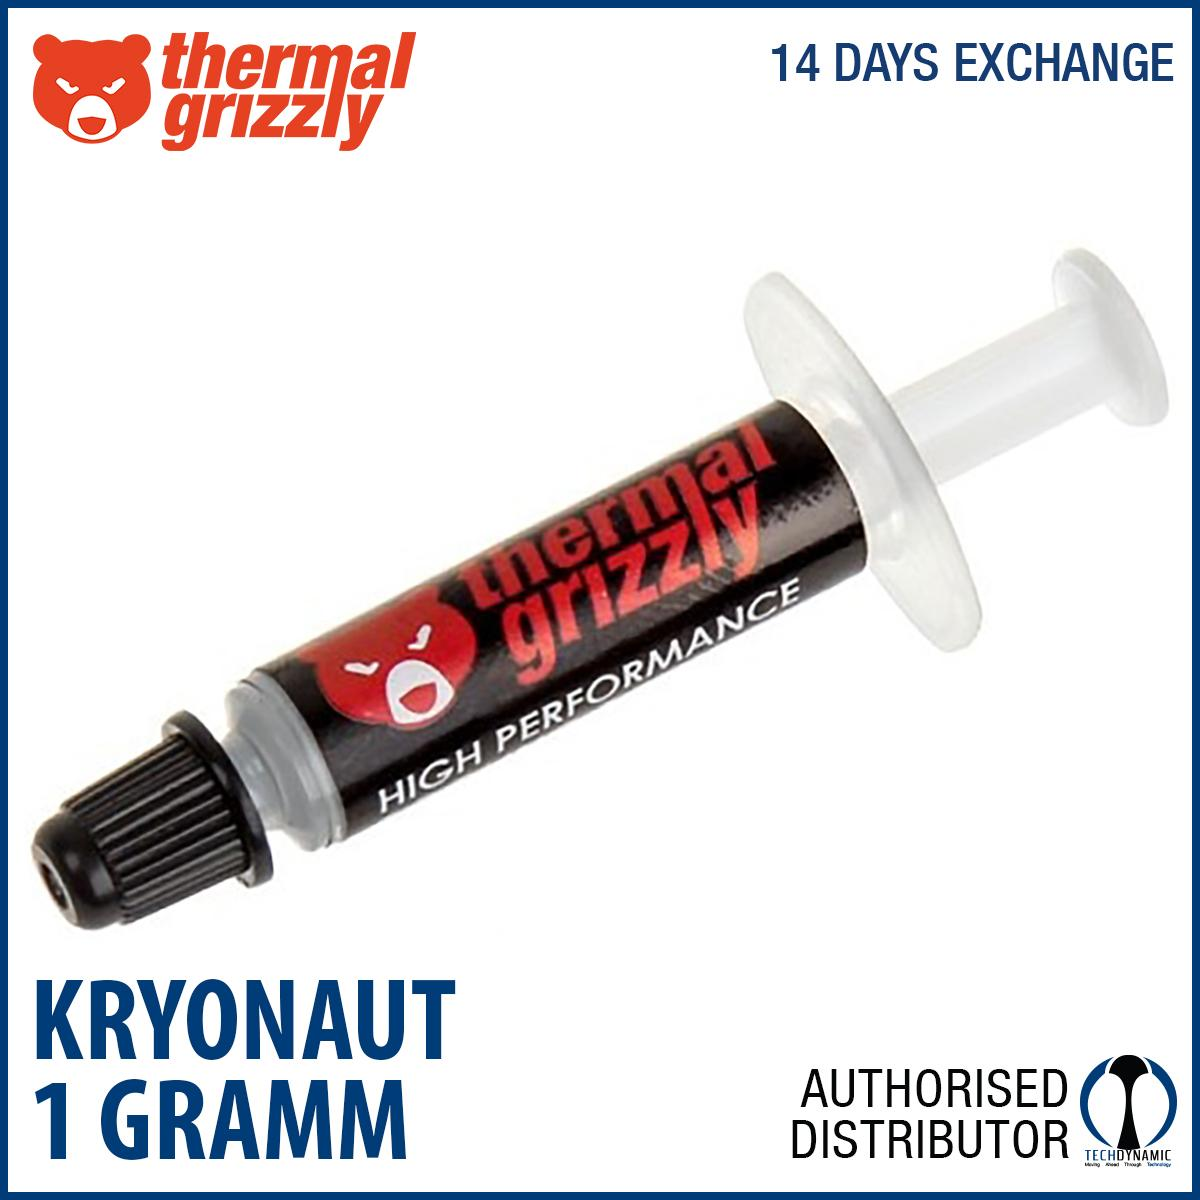 Cheap Thermal Grizzly Kryonaut Warmeleitpaste 1 Gramm